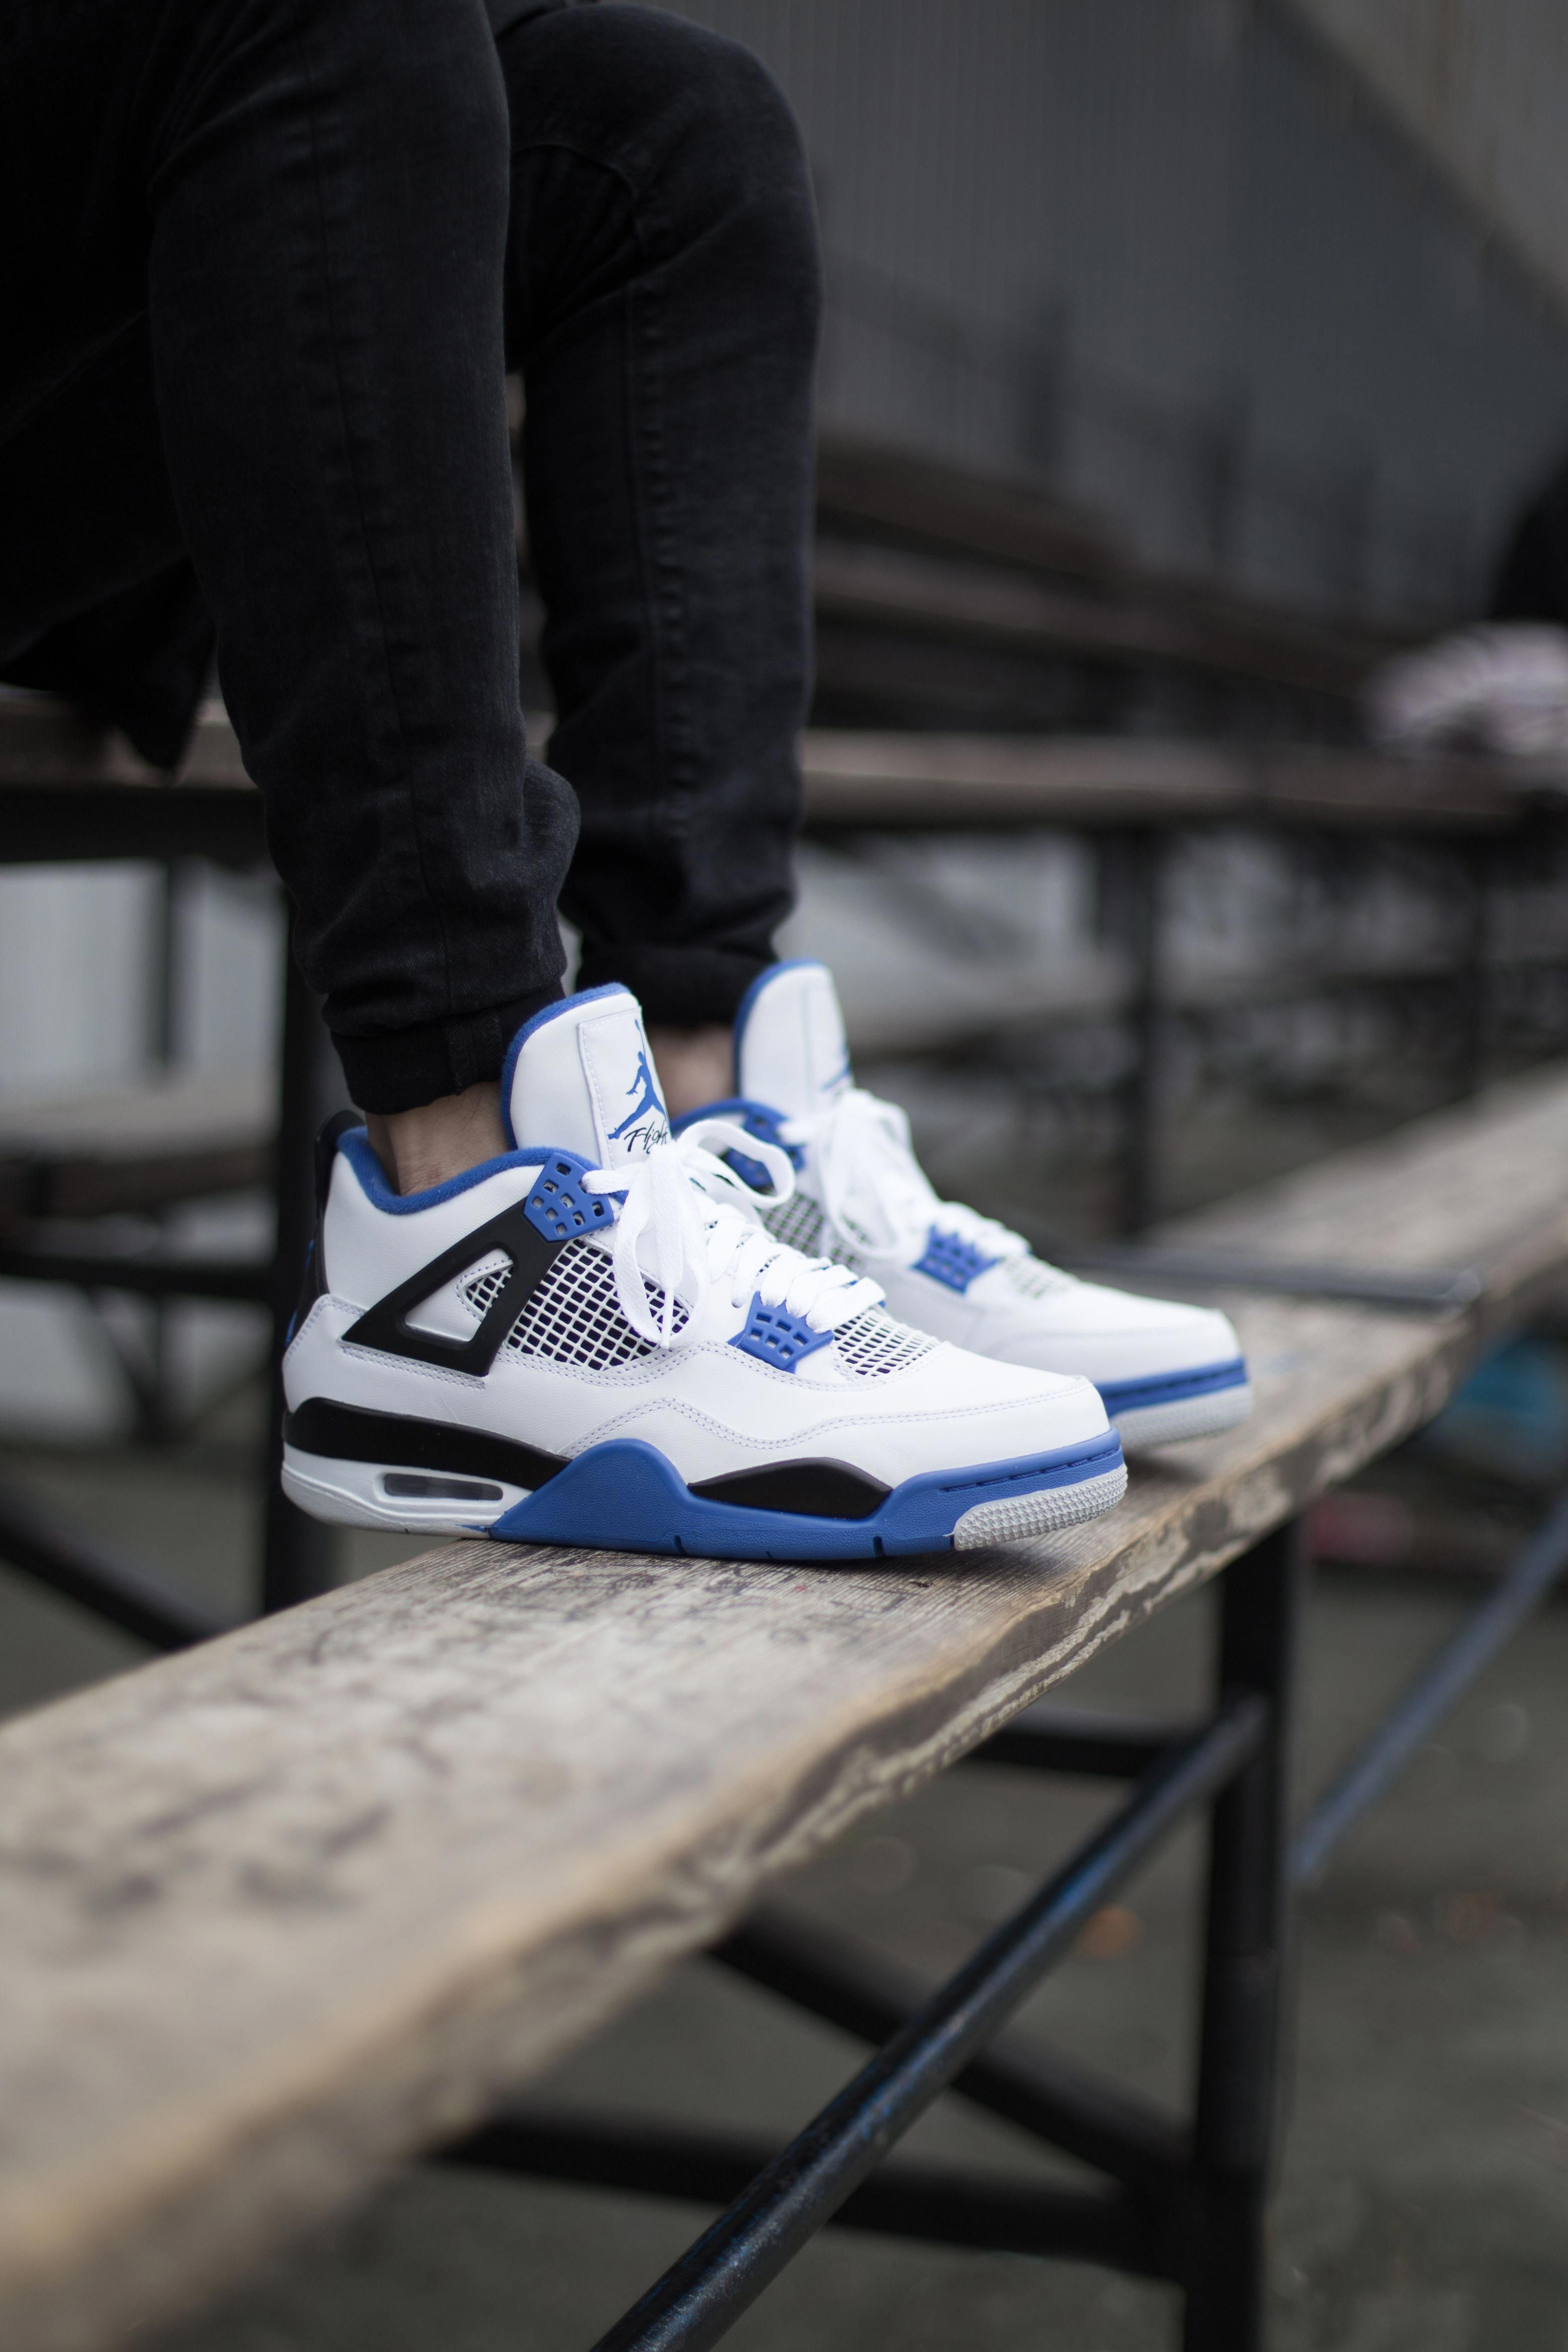 615d088d33f Air Jordan 4 Motorsport - EU Kicks: Sneaker Magazine #MensFashionSneakers